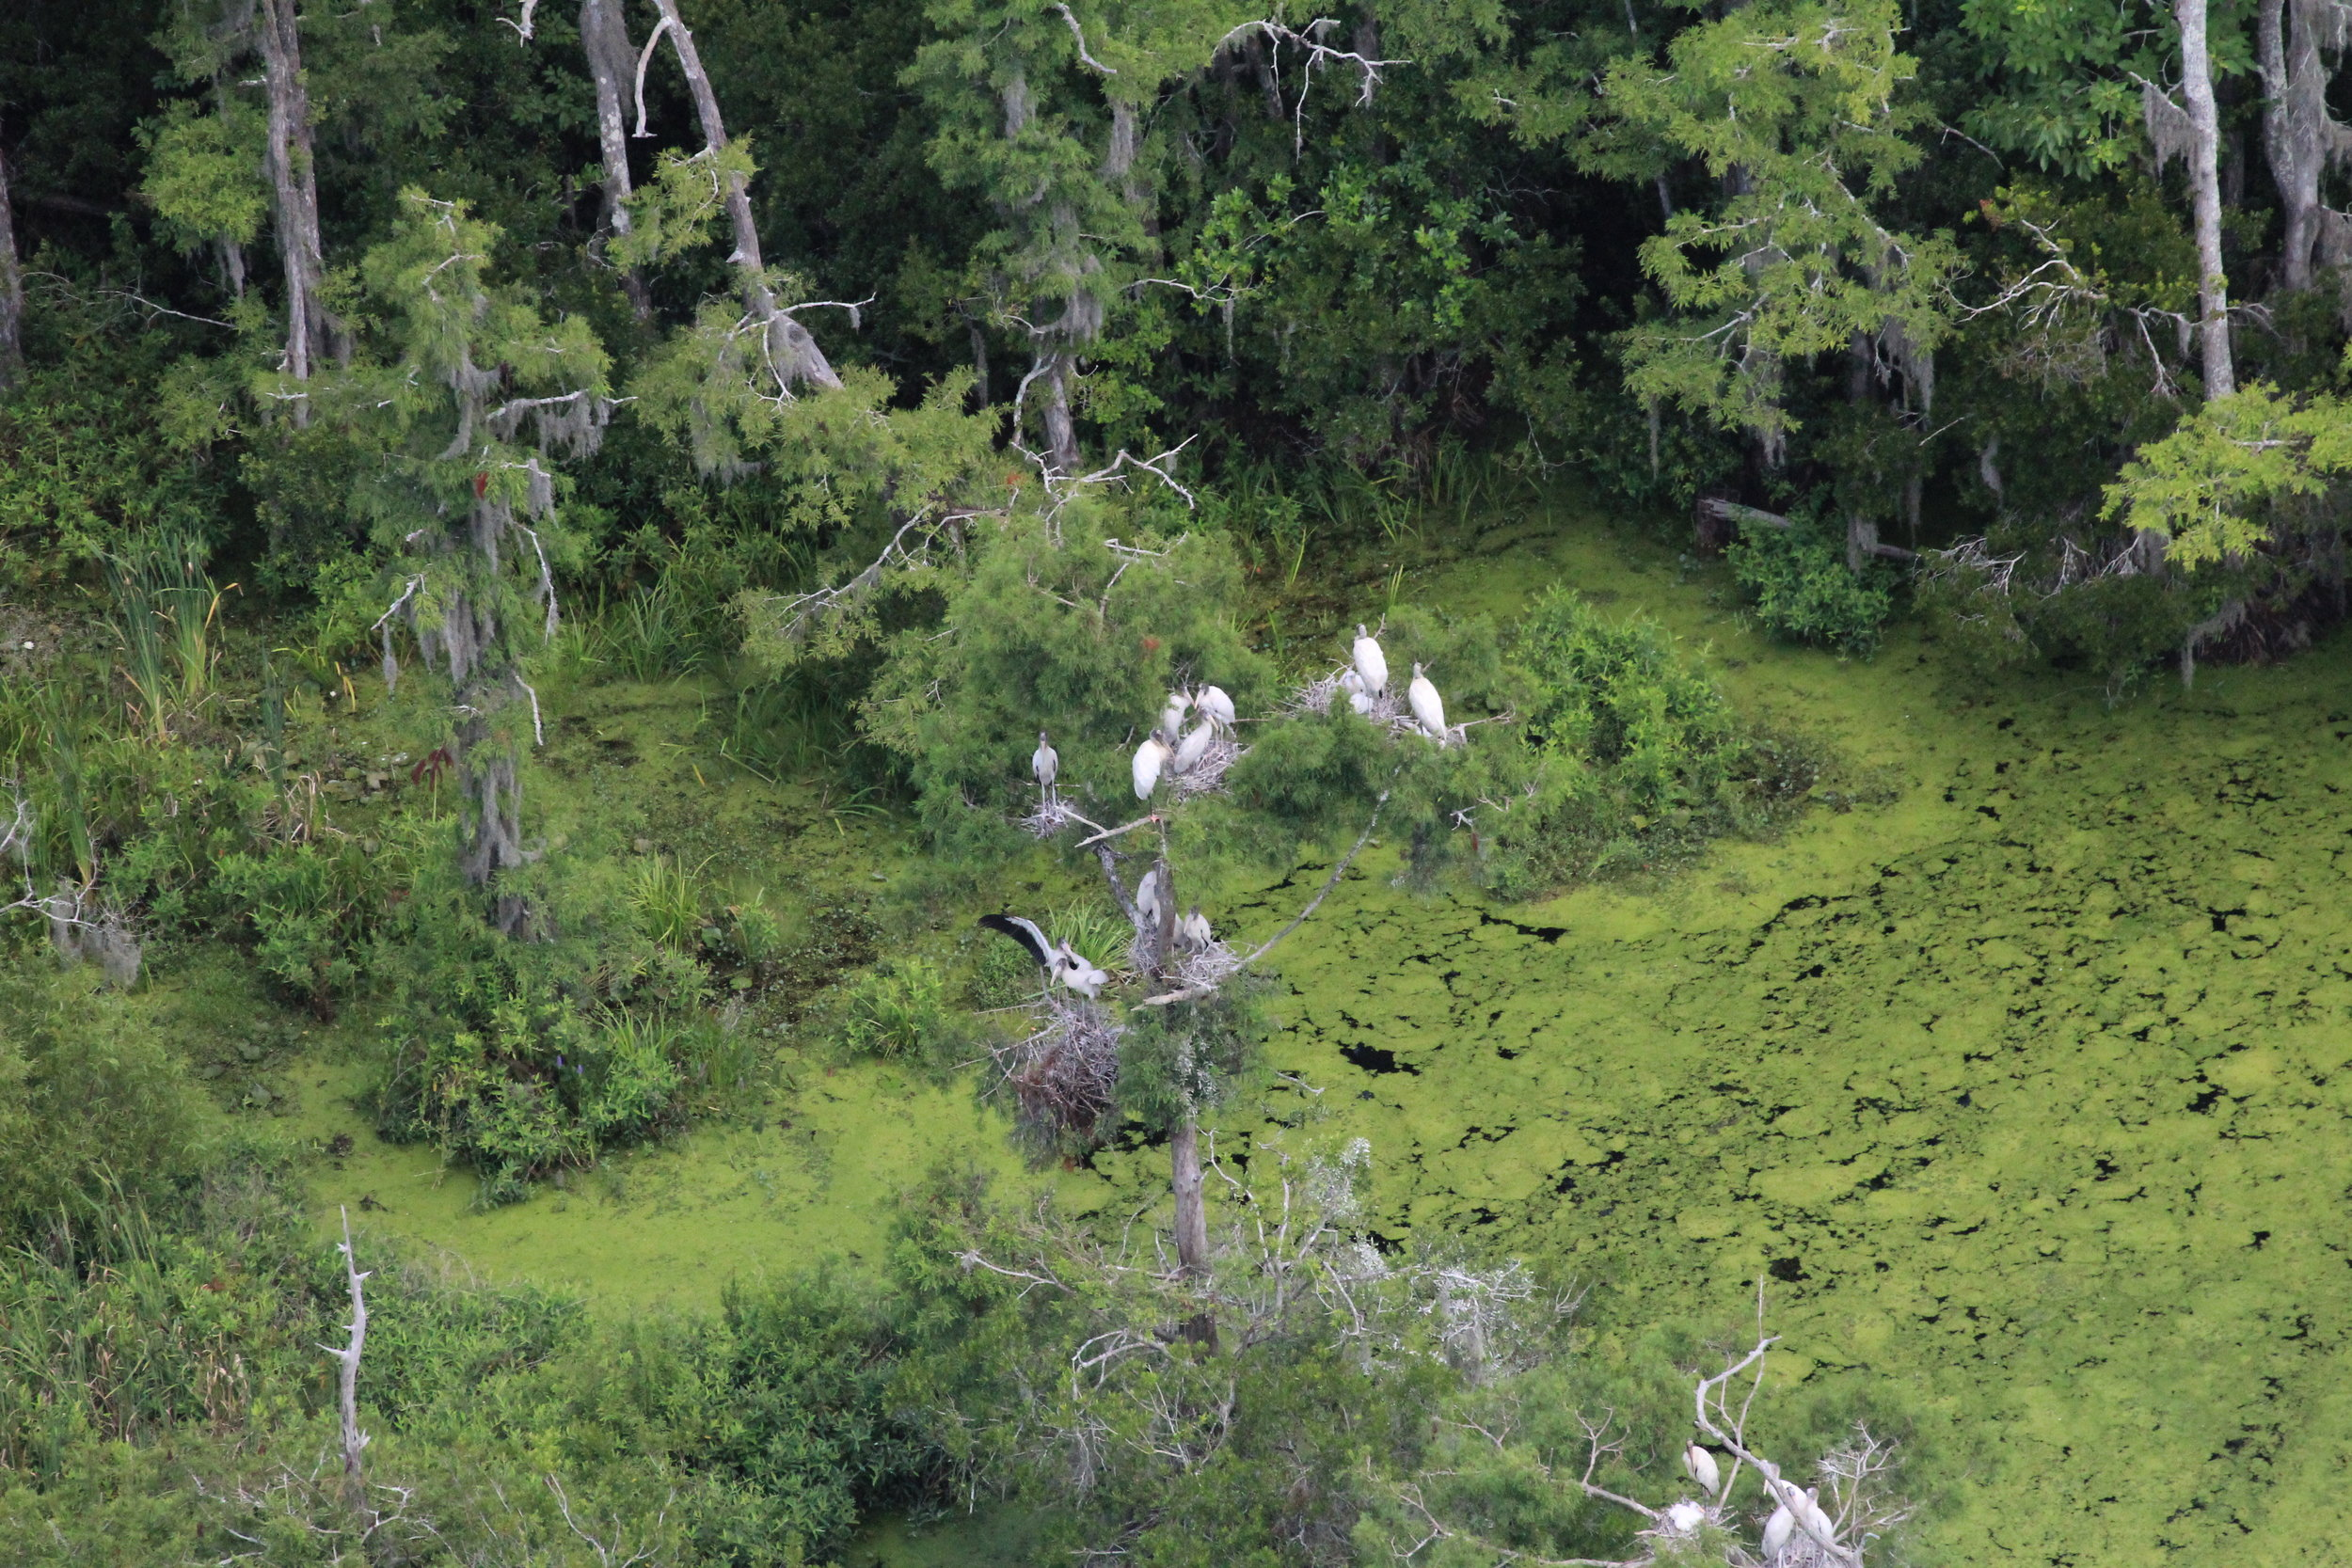 Only in recent decades have wood storks expanded their range and begun nesting in South Carolina. The first nests were documented in 1981 (11 nests); in 2016 that number had grown to 2,512 nests. (Photo: Christy Hand)